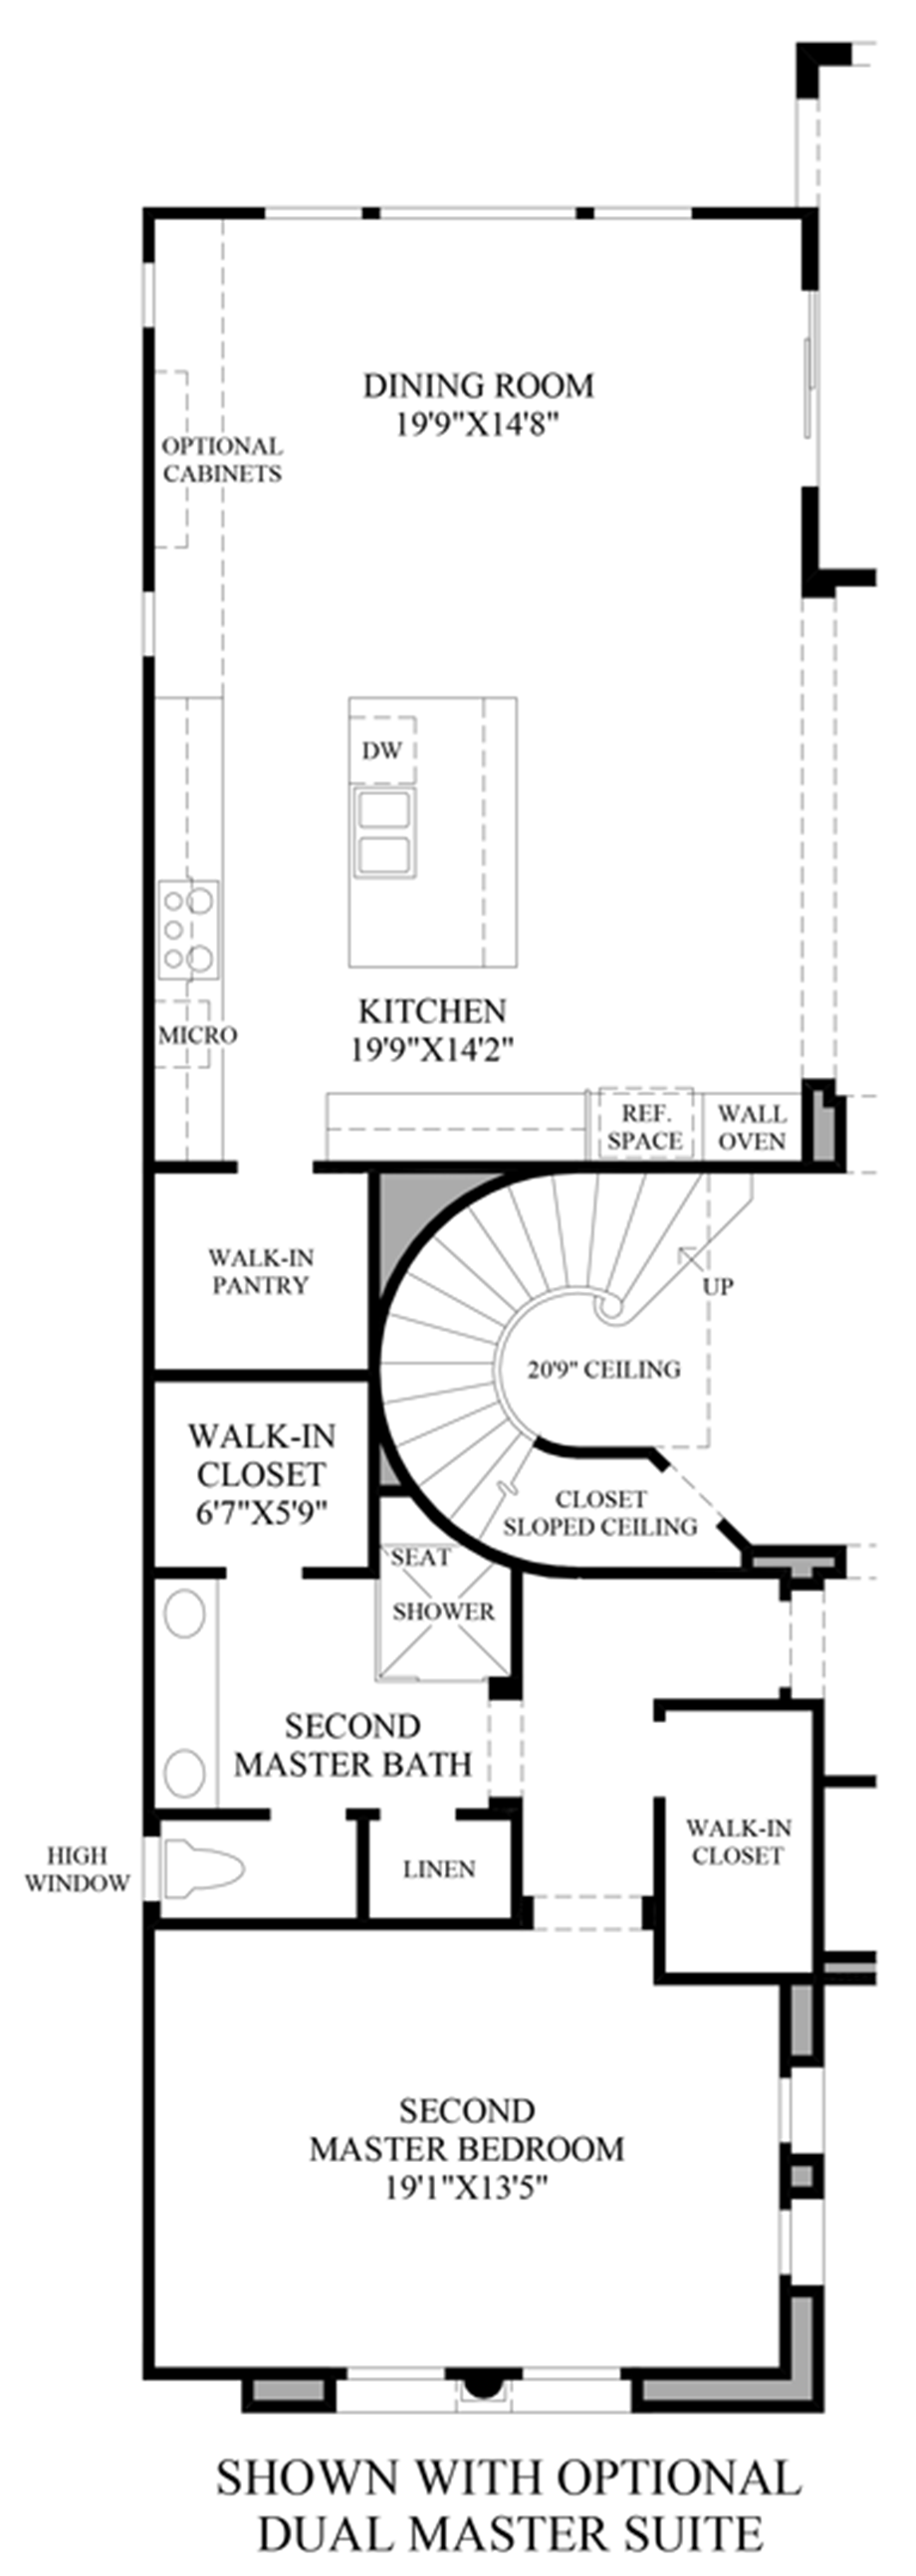 sorrento op suitec 920 - 44+ Master Bedroom On Second Floor House Plans Background